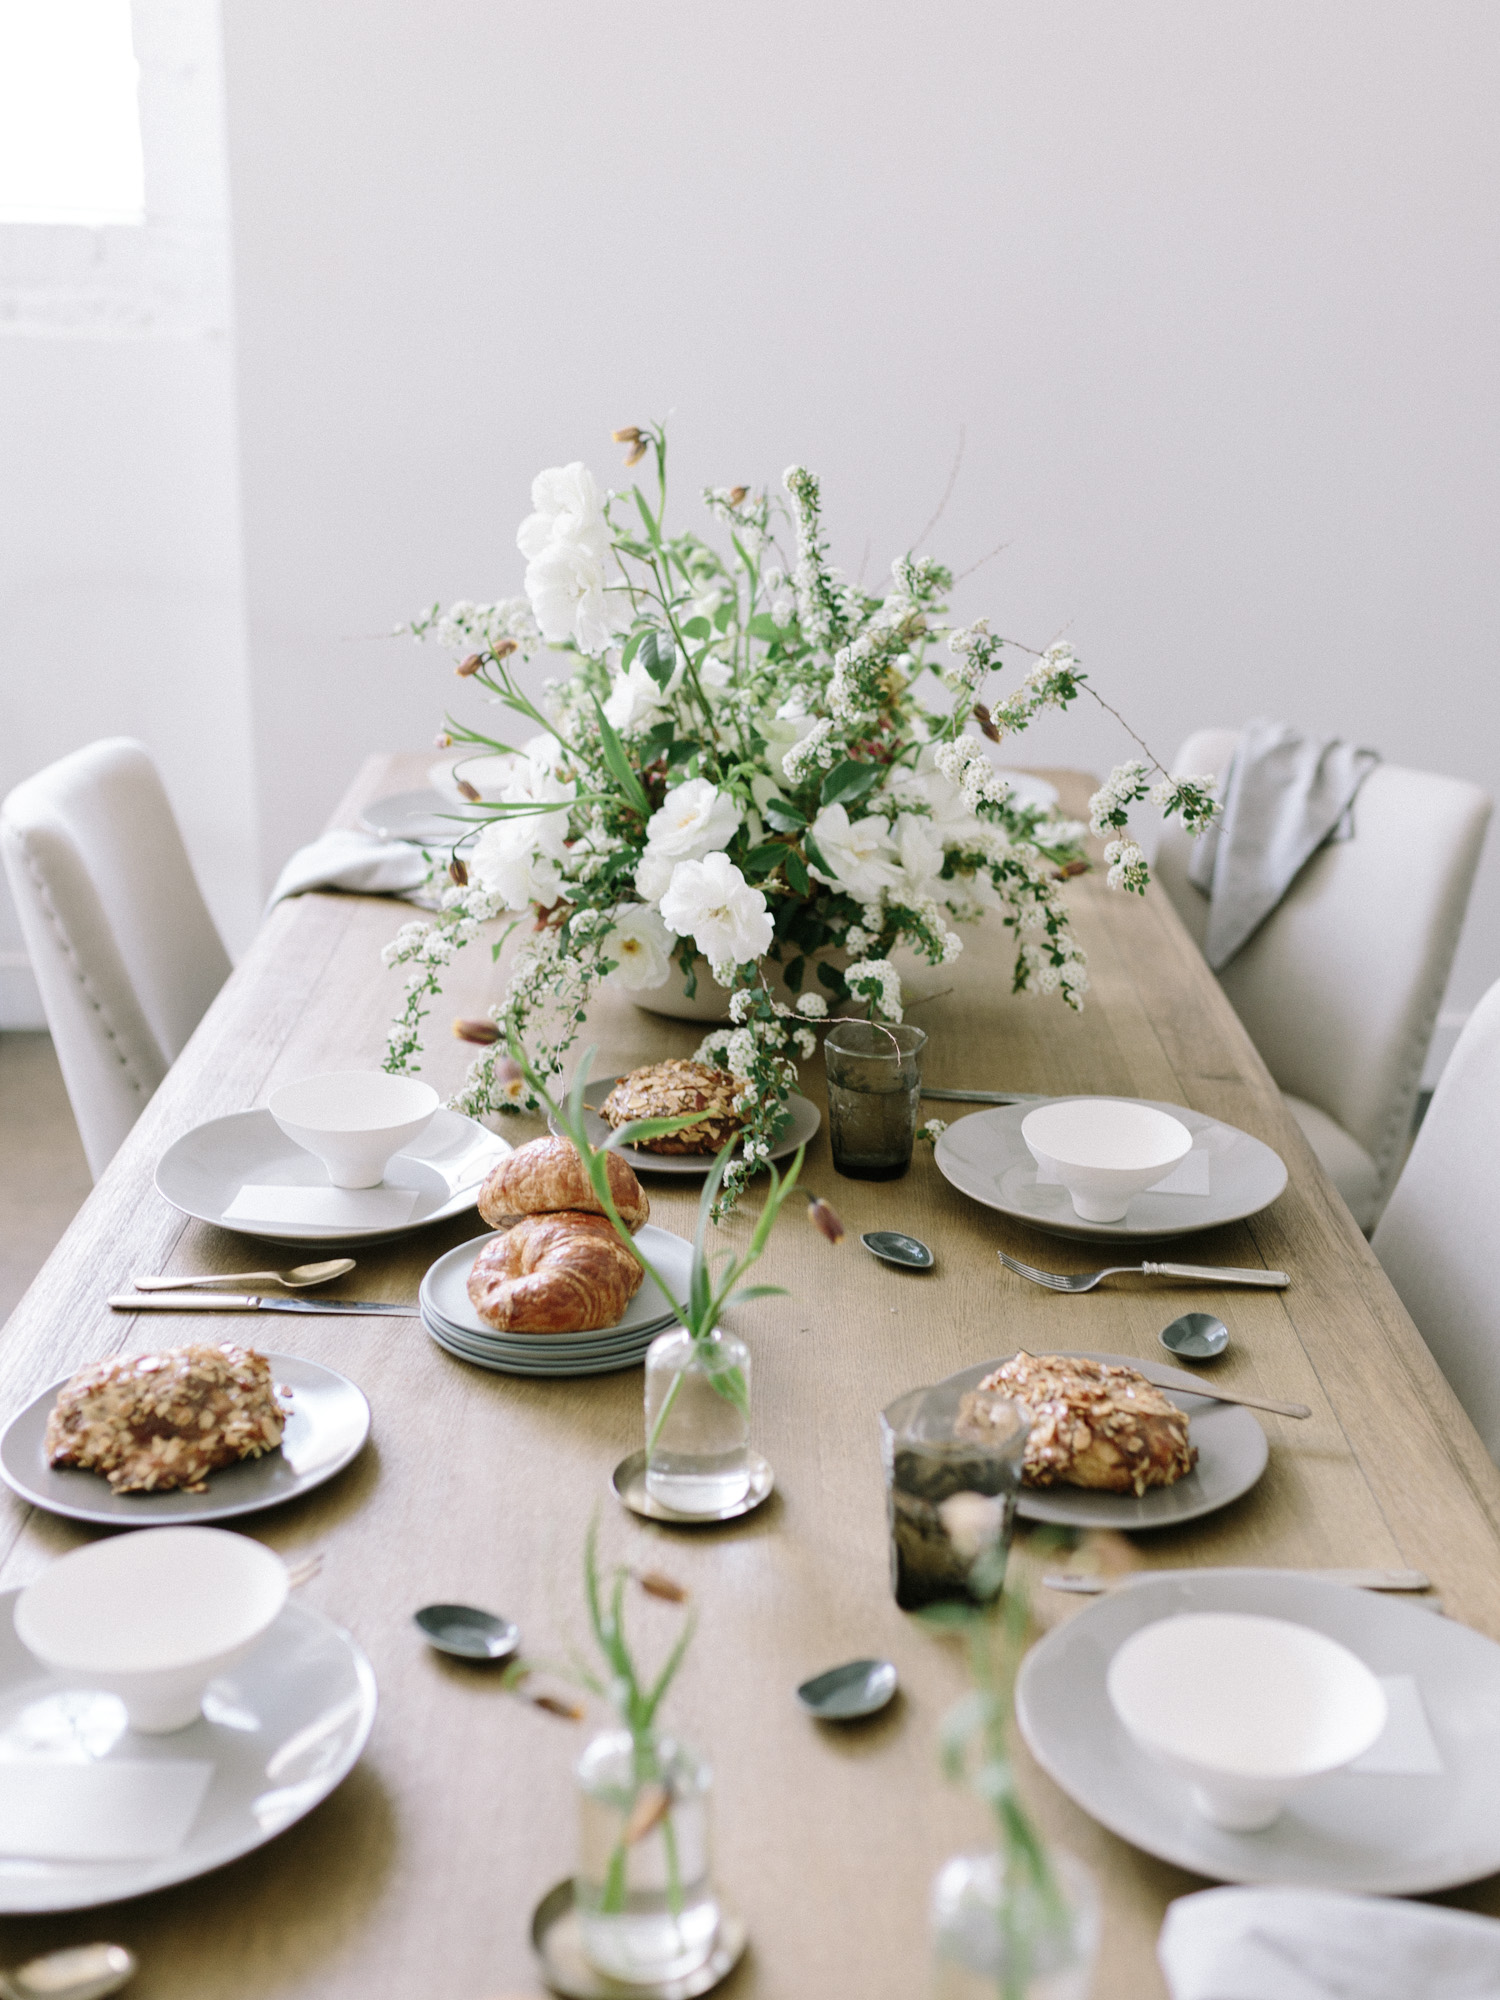 a fresh spring table scape with croissants and an untamed floral centerpiece